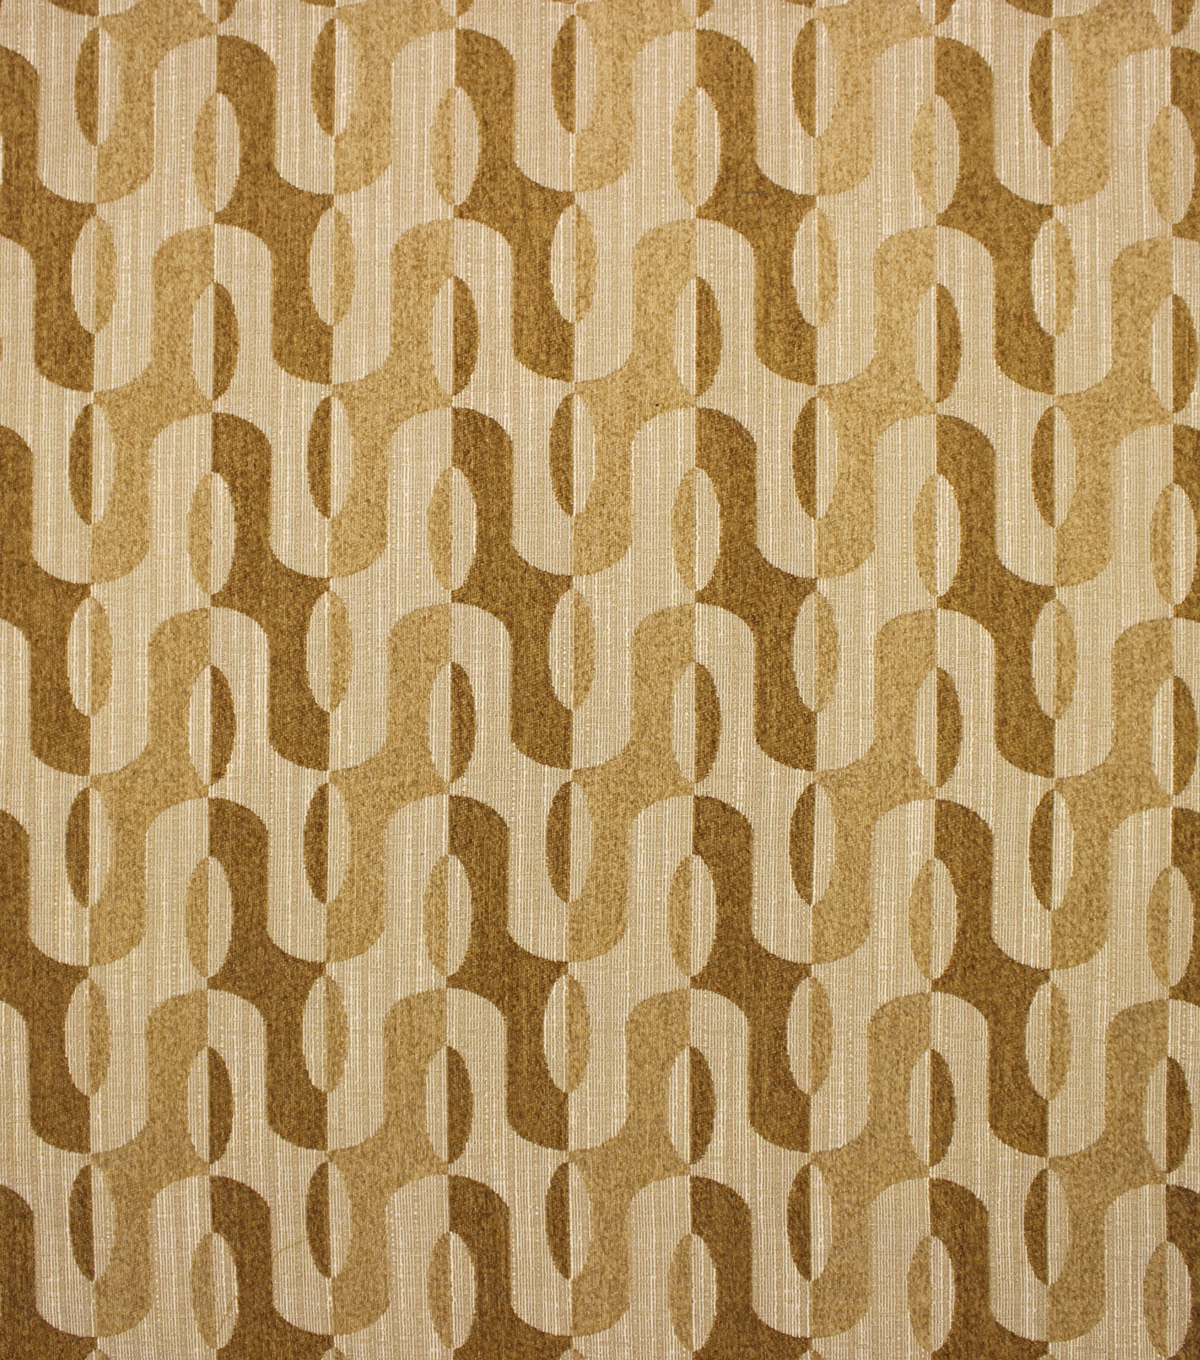 Home Decor 8\u0022x8\u0022 Fabric Swatch-Upholstery  Barrow M8717-5826 Sandstone